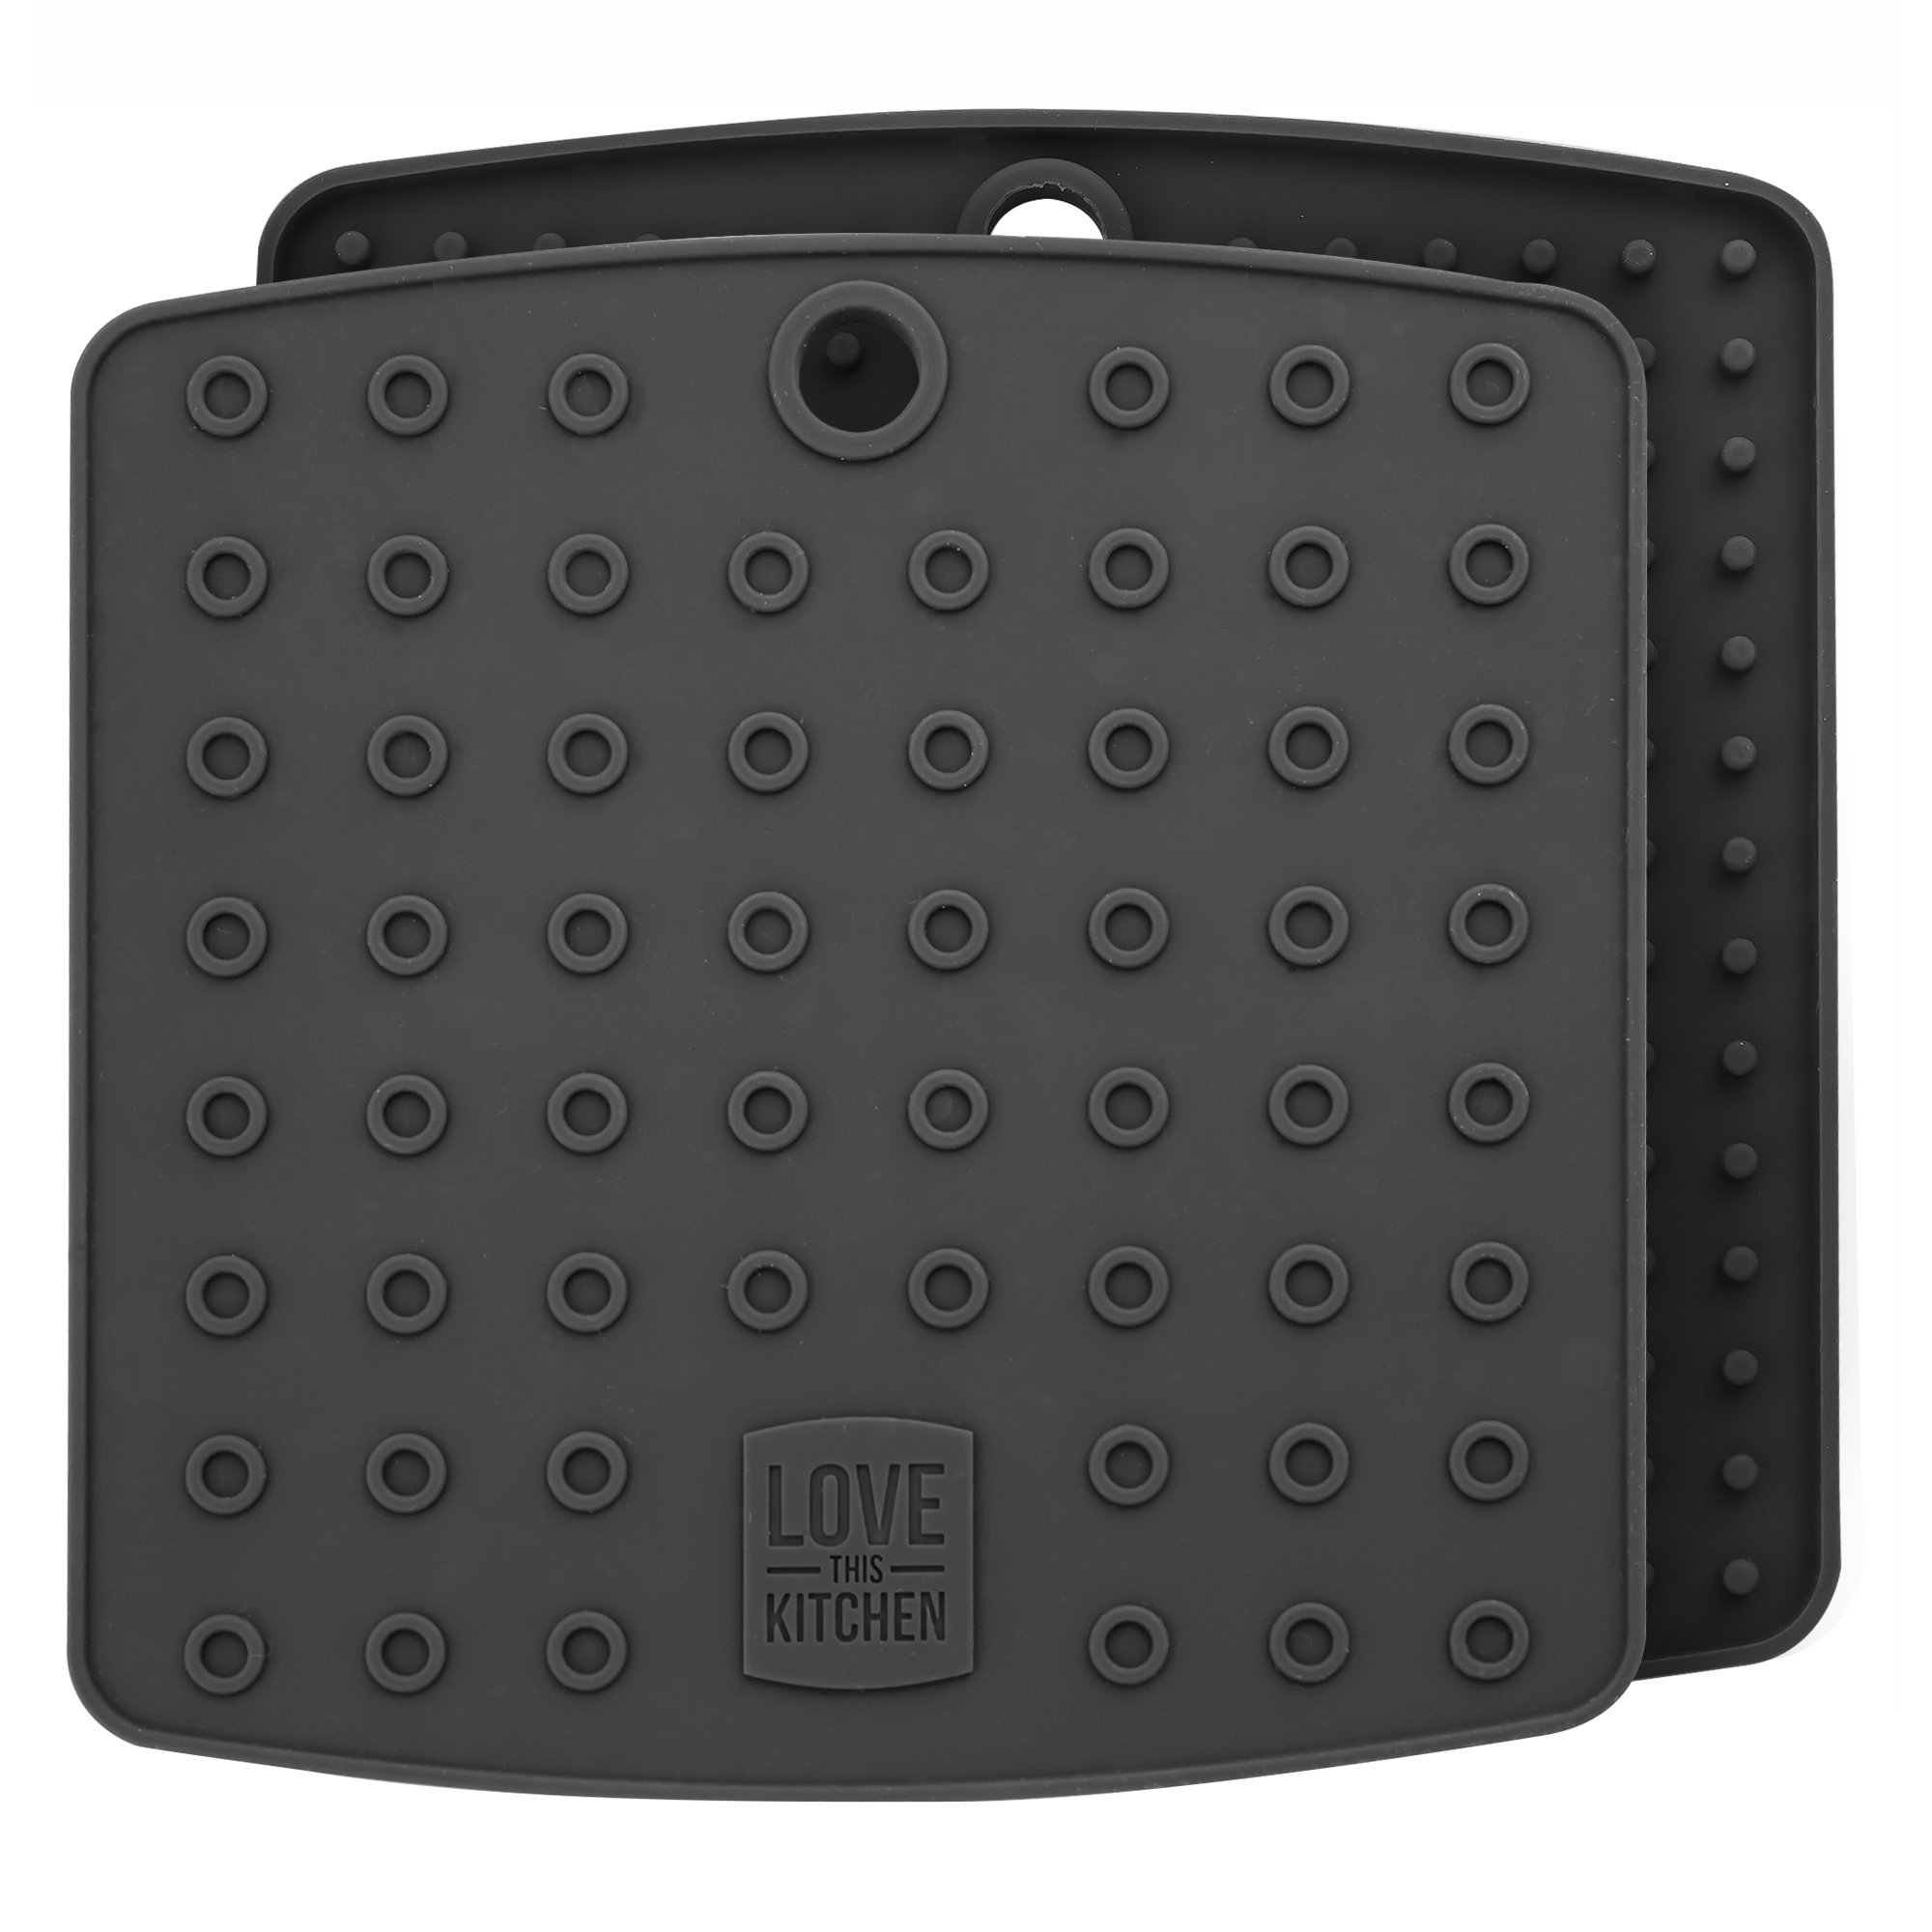 Premium Silicone Trivet Mats/Hot Pads, Pot Holders, Spoon Rest, Jar Opener & Coasters - Our 5 in 1 Kitchen Tool is Heat Resistant to 442 °F, Thick & Flexible (7'' x 7'', Dark Gray, 1 Pair) by Love This Kitchen (Image #2)